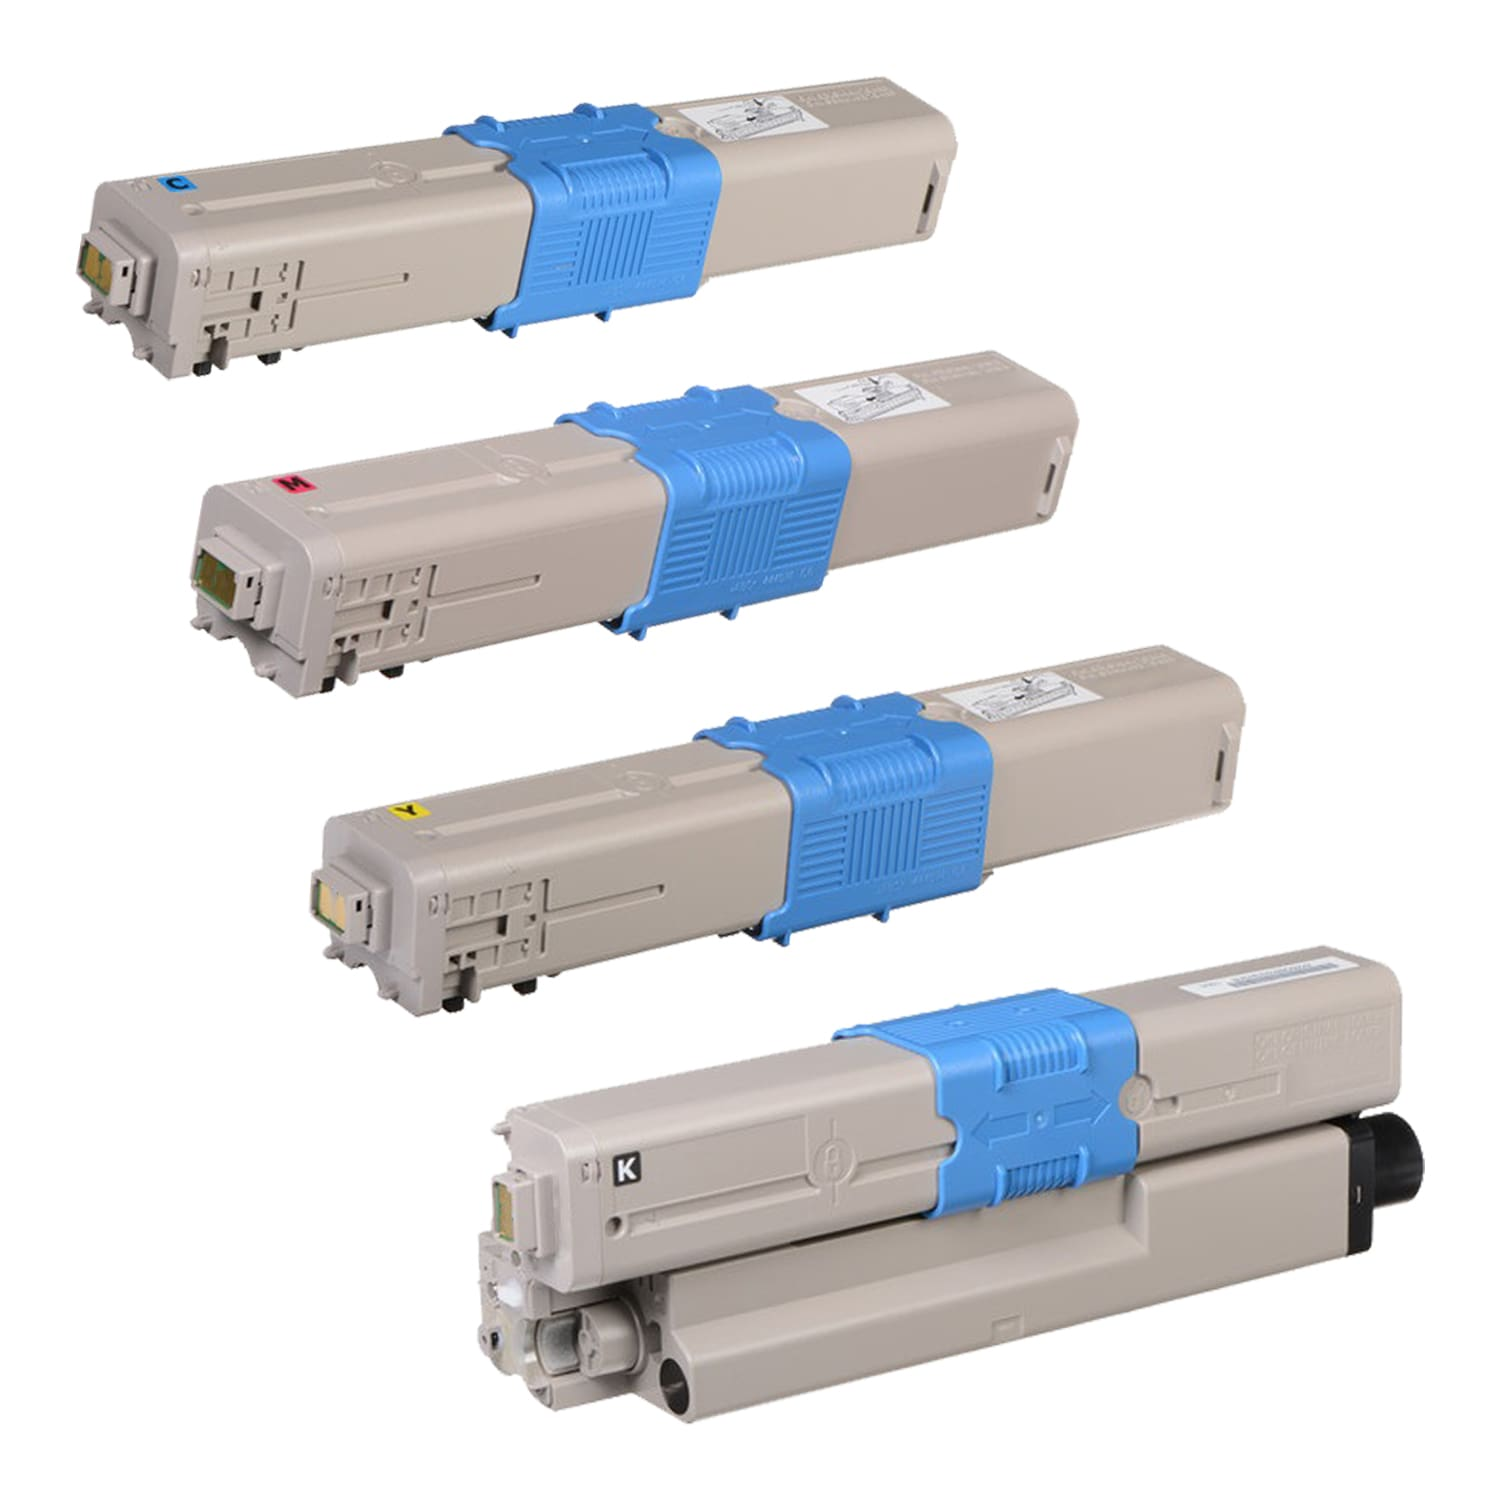 Remanufactured Okidata C330 Toner Pack - 4 Cartridges